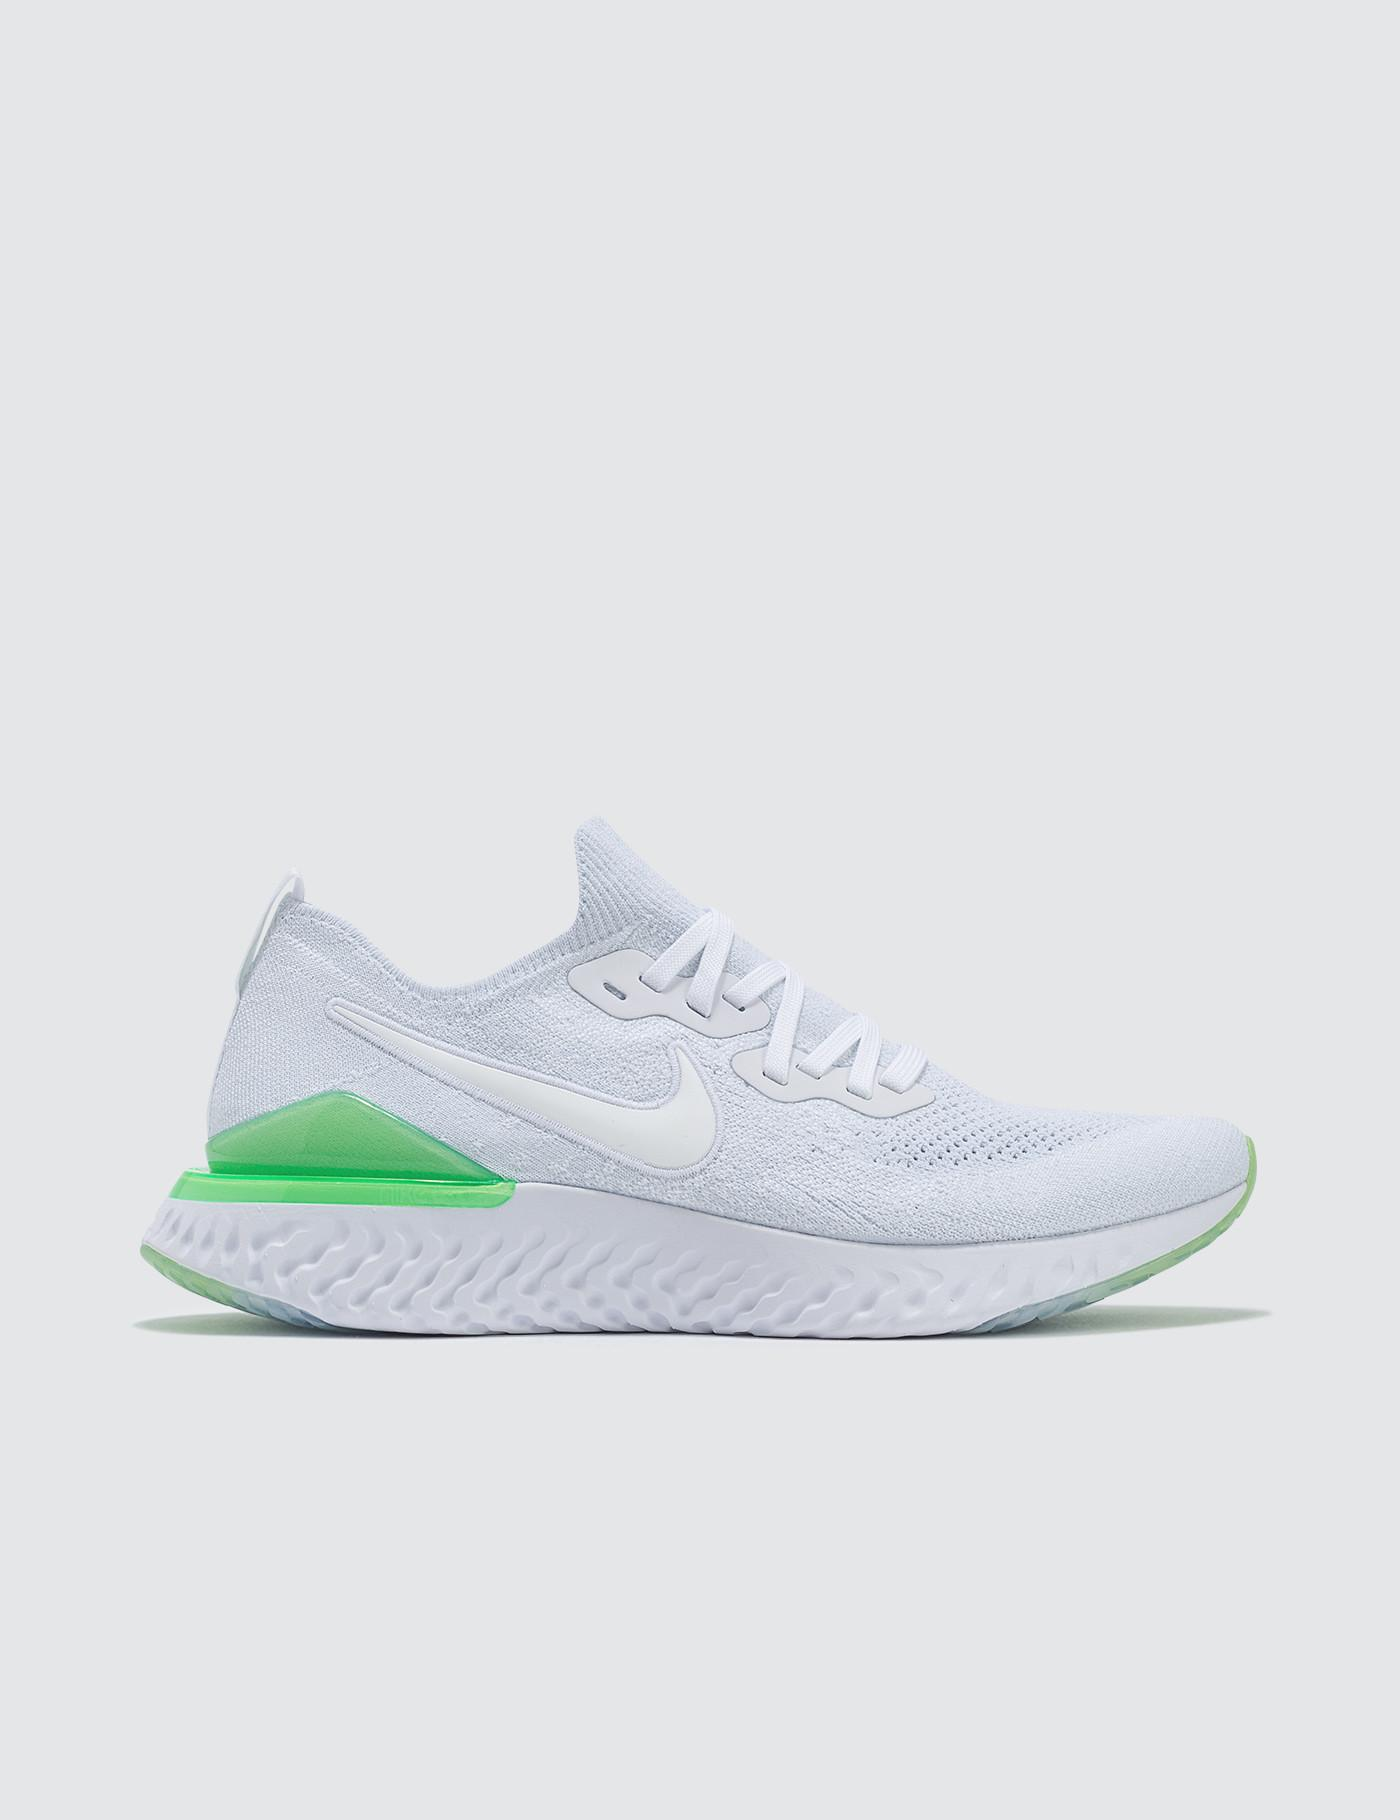 92f9d55c8 Nike Epic React Flyknit 2 in White for Men - Lyst